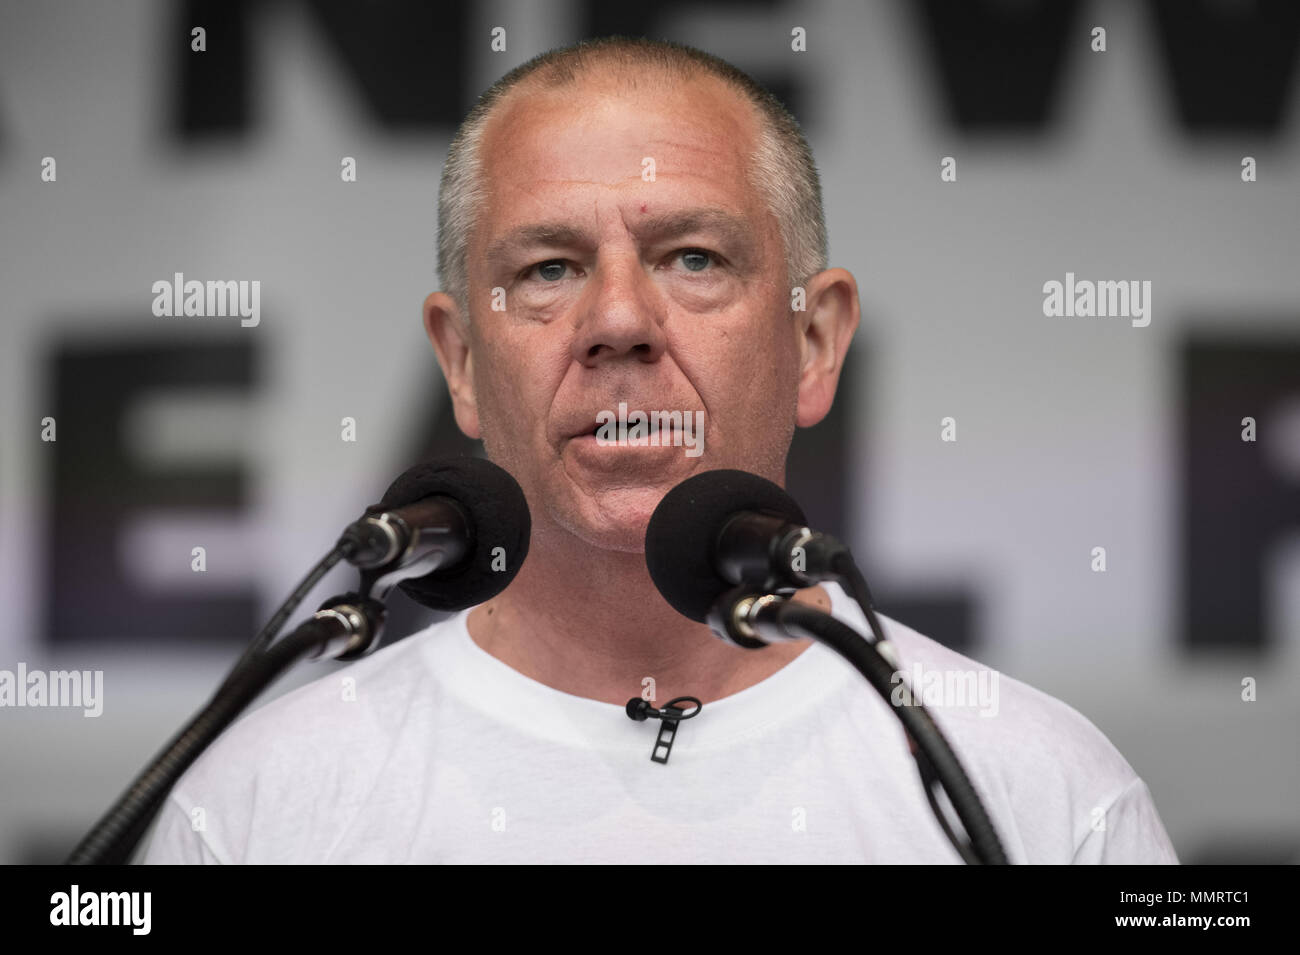 London, UK. 12th May, 2018. Tim Roache, General Secretary of GMB Union, speaks to a crowd of  thousands of trade unionists during a TUC rally in Hyde Park on the theme of 'a new deal for working people', aimed against government austerity and injustice. Credit: Guy Corbishley/Alamy Live News - Stock Image